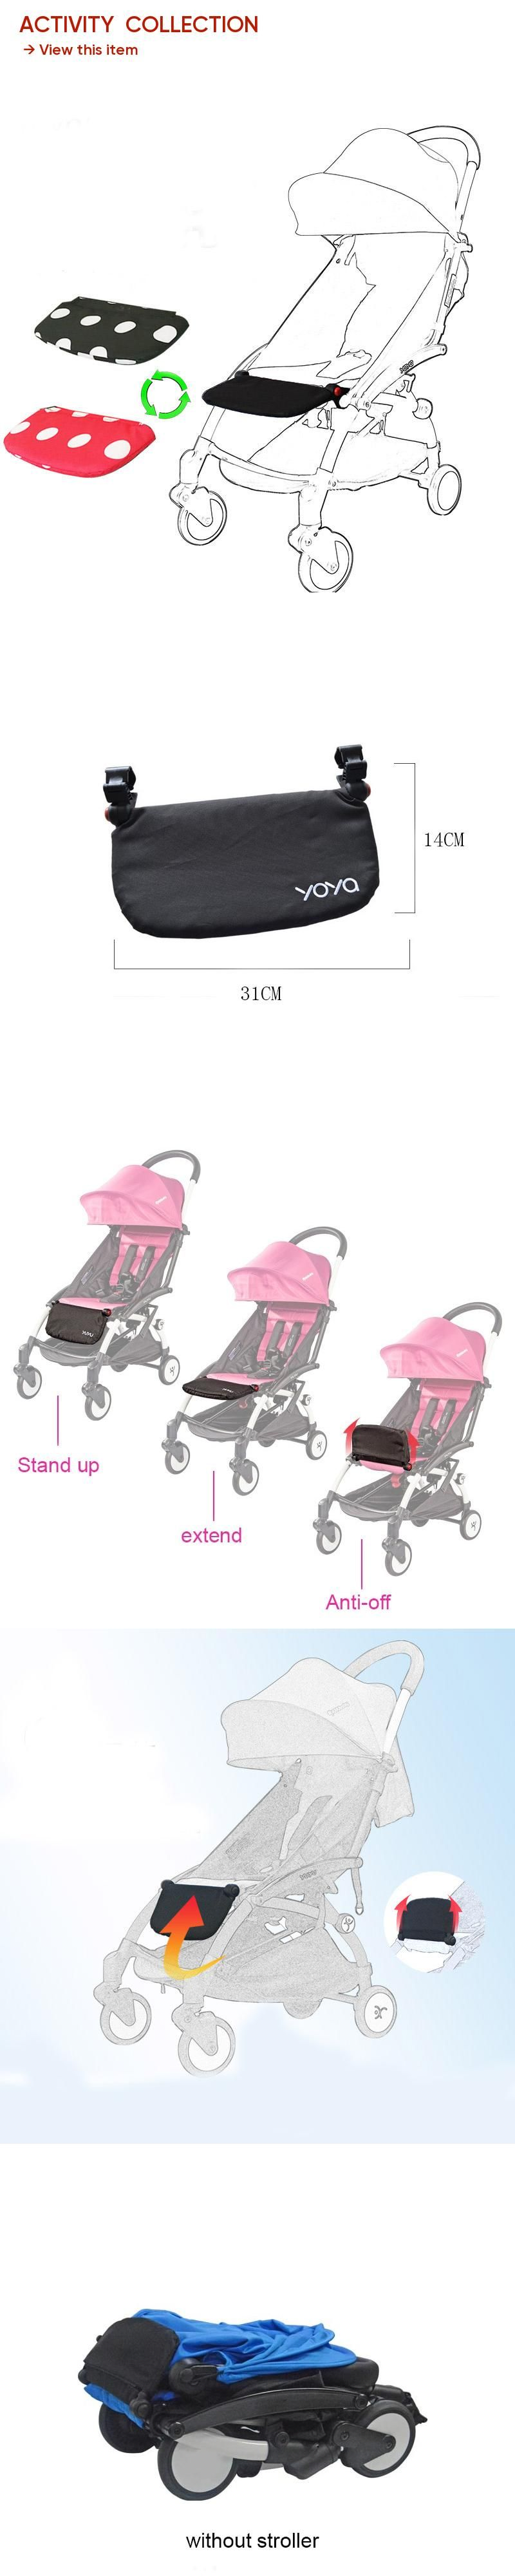 Pin on Activity & Gear For Baby